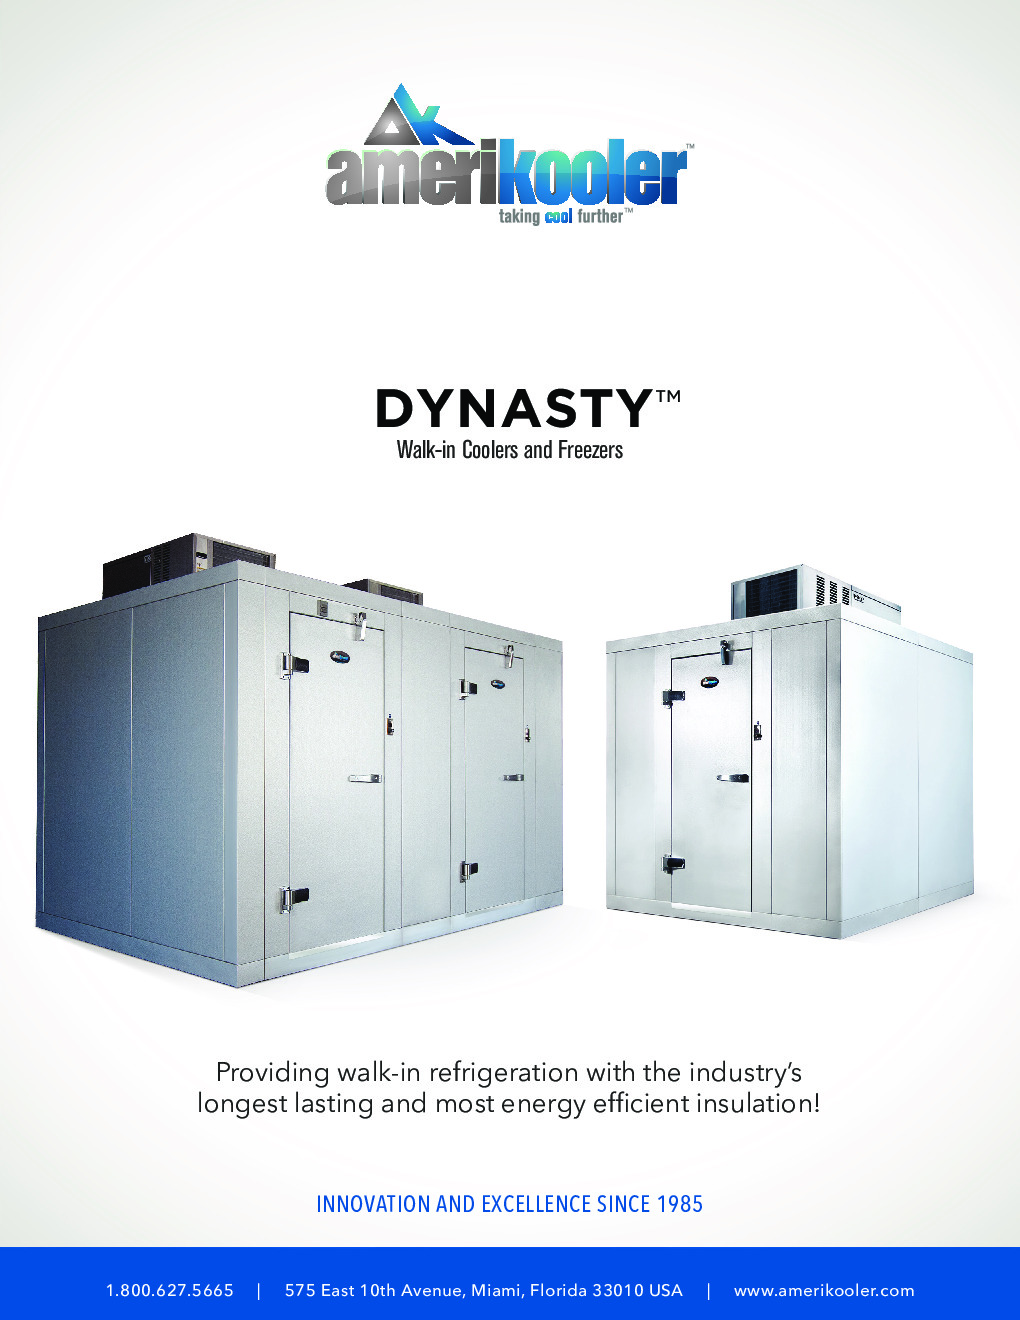 AmeriKooler DW081877N-8/10-SC 8' X 18' Walk-In Cooler, 10' L Cooler without Floor and 8' L Freezer, Self Contained